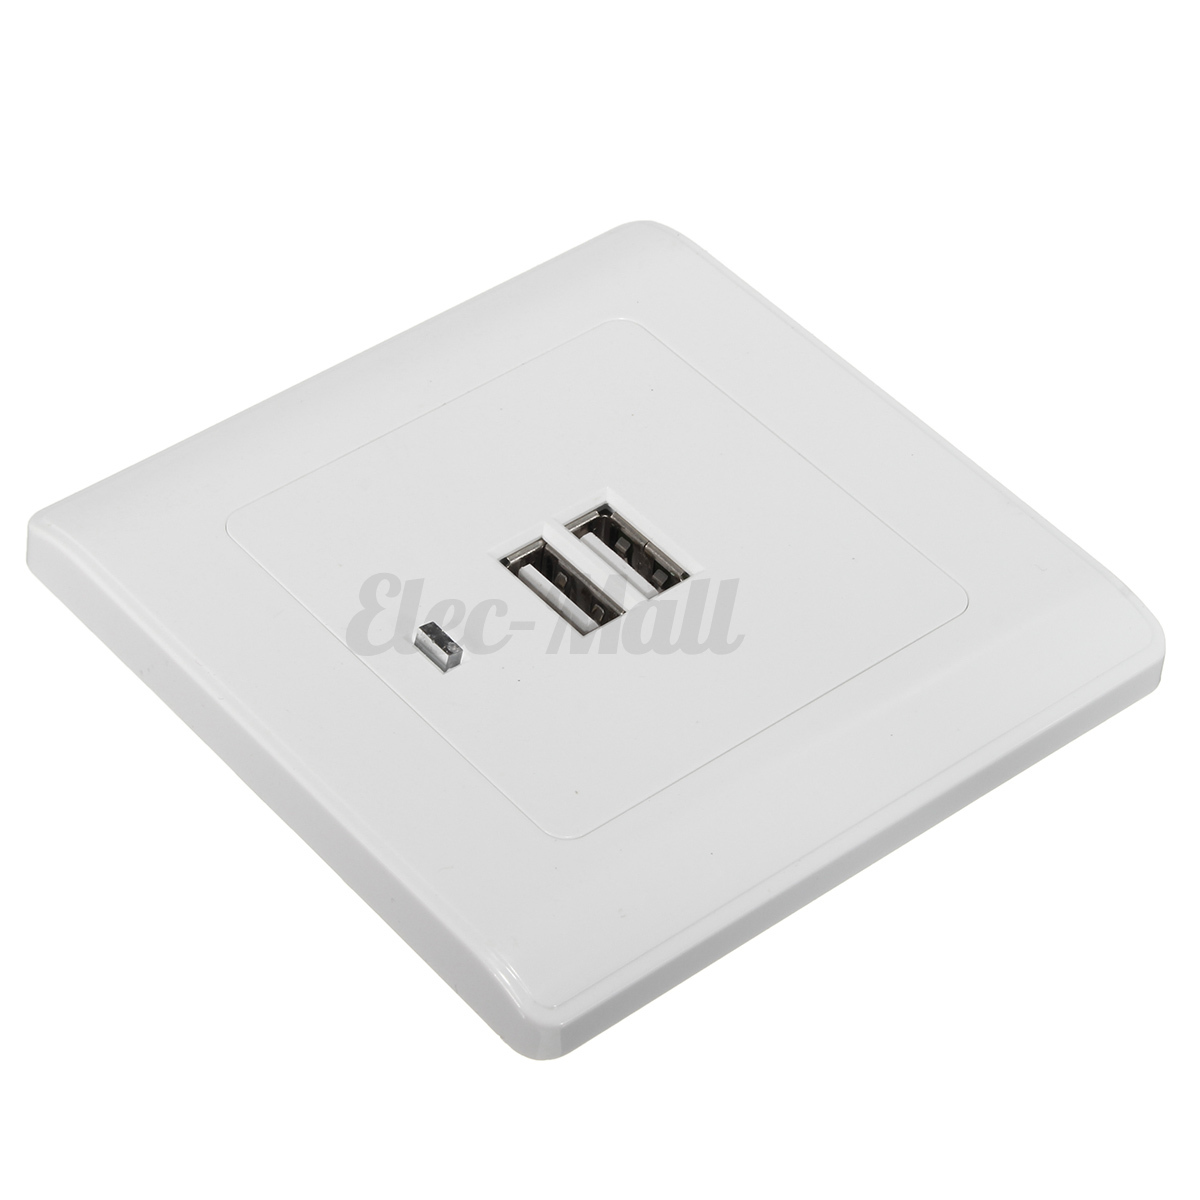 Dual USB Port Wall Socket Charger AC Power Receptacle